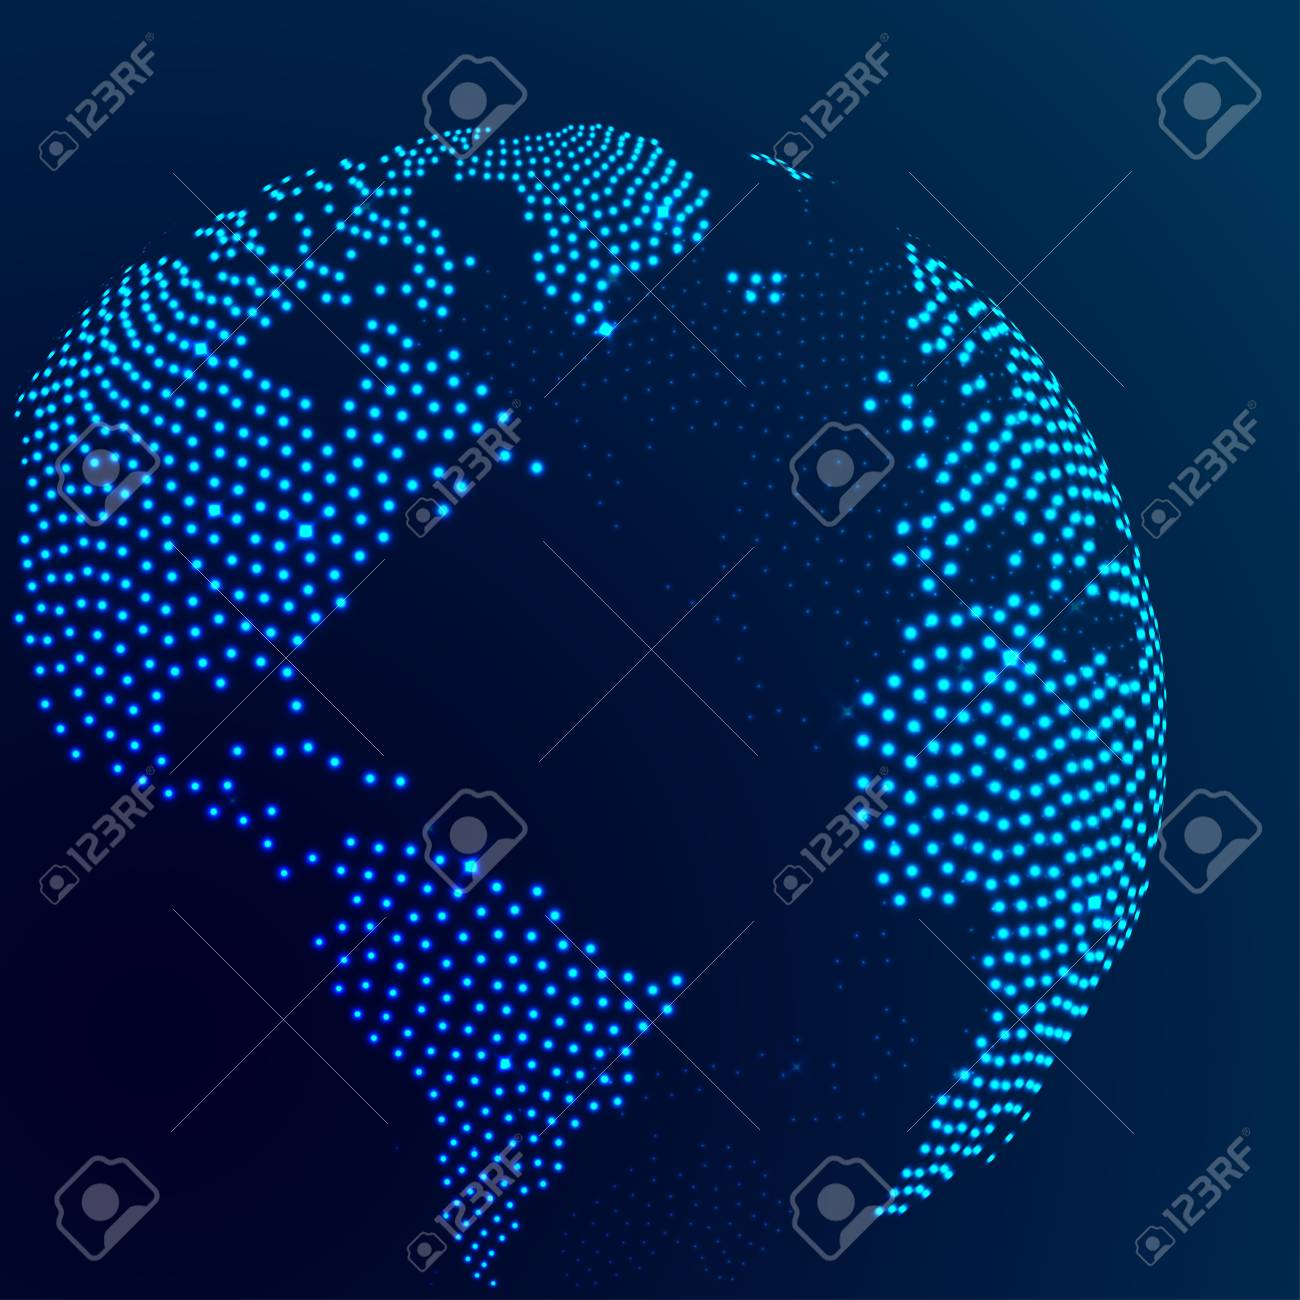 Globe earth world map abstract dotted vector background blue globe earth world map abstract dotted vector background blue wallpaper illustration stock vector 66989902 gumiabroncs Gallery